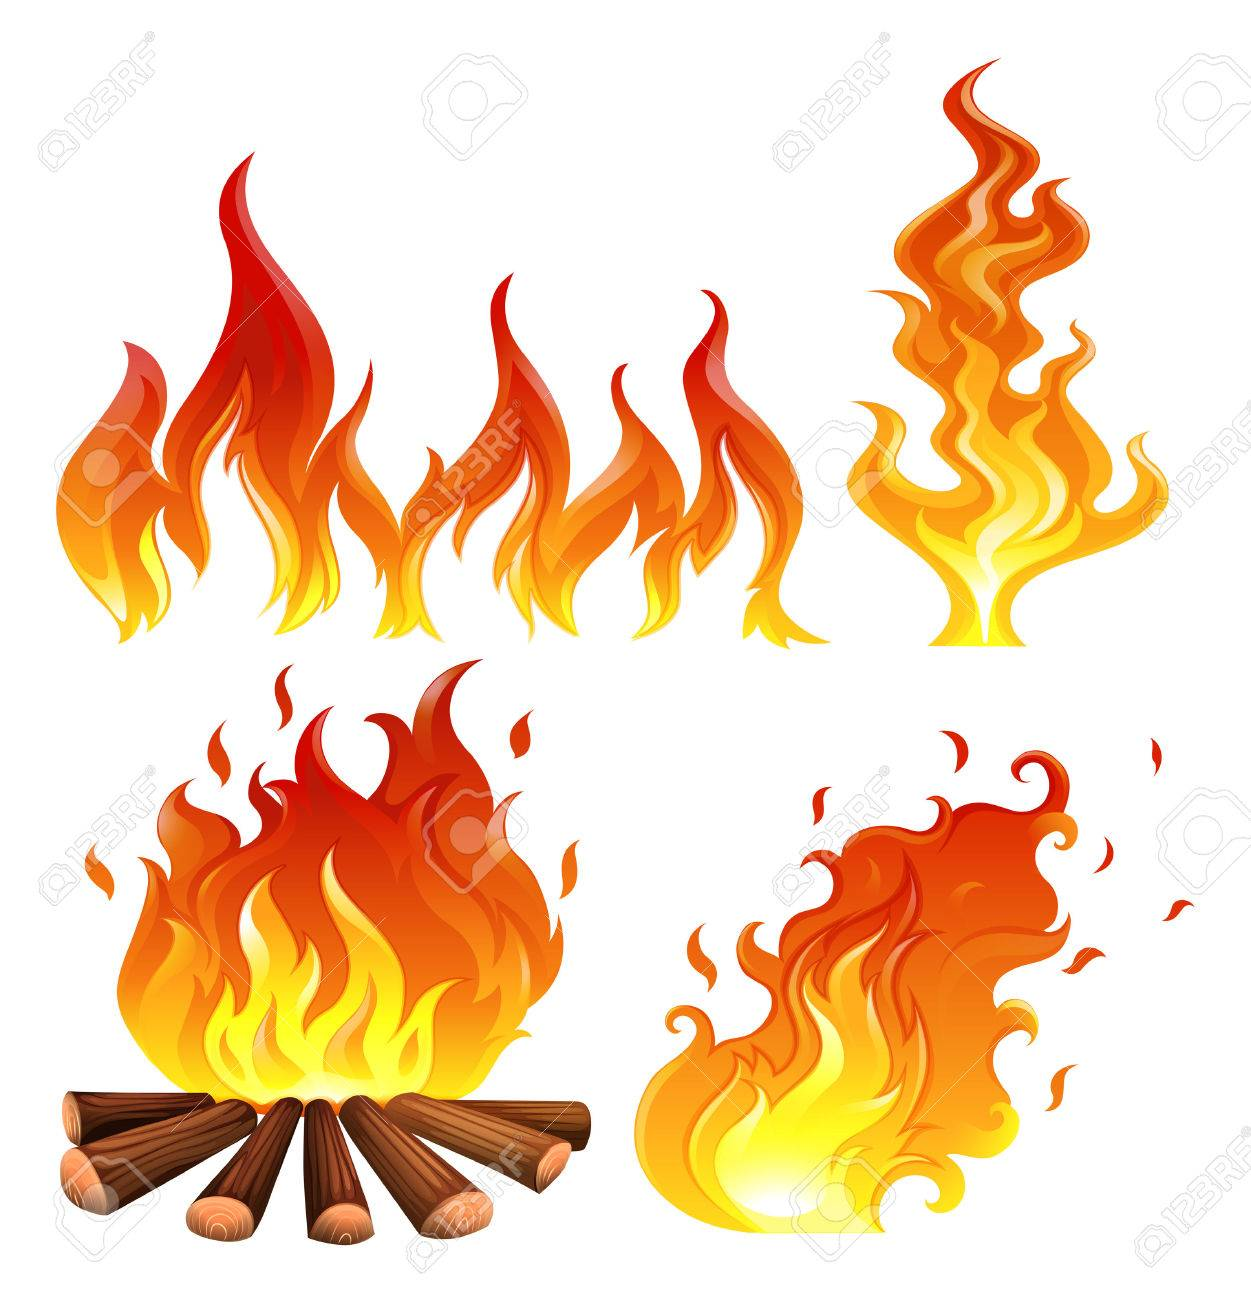 Illustration of the set of flames on a white background - 30260754